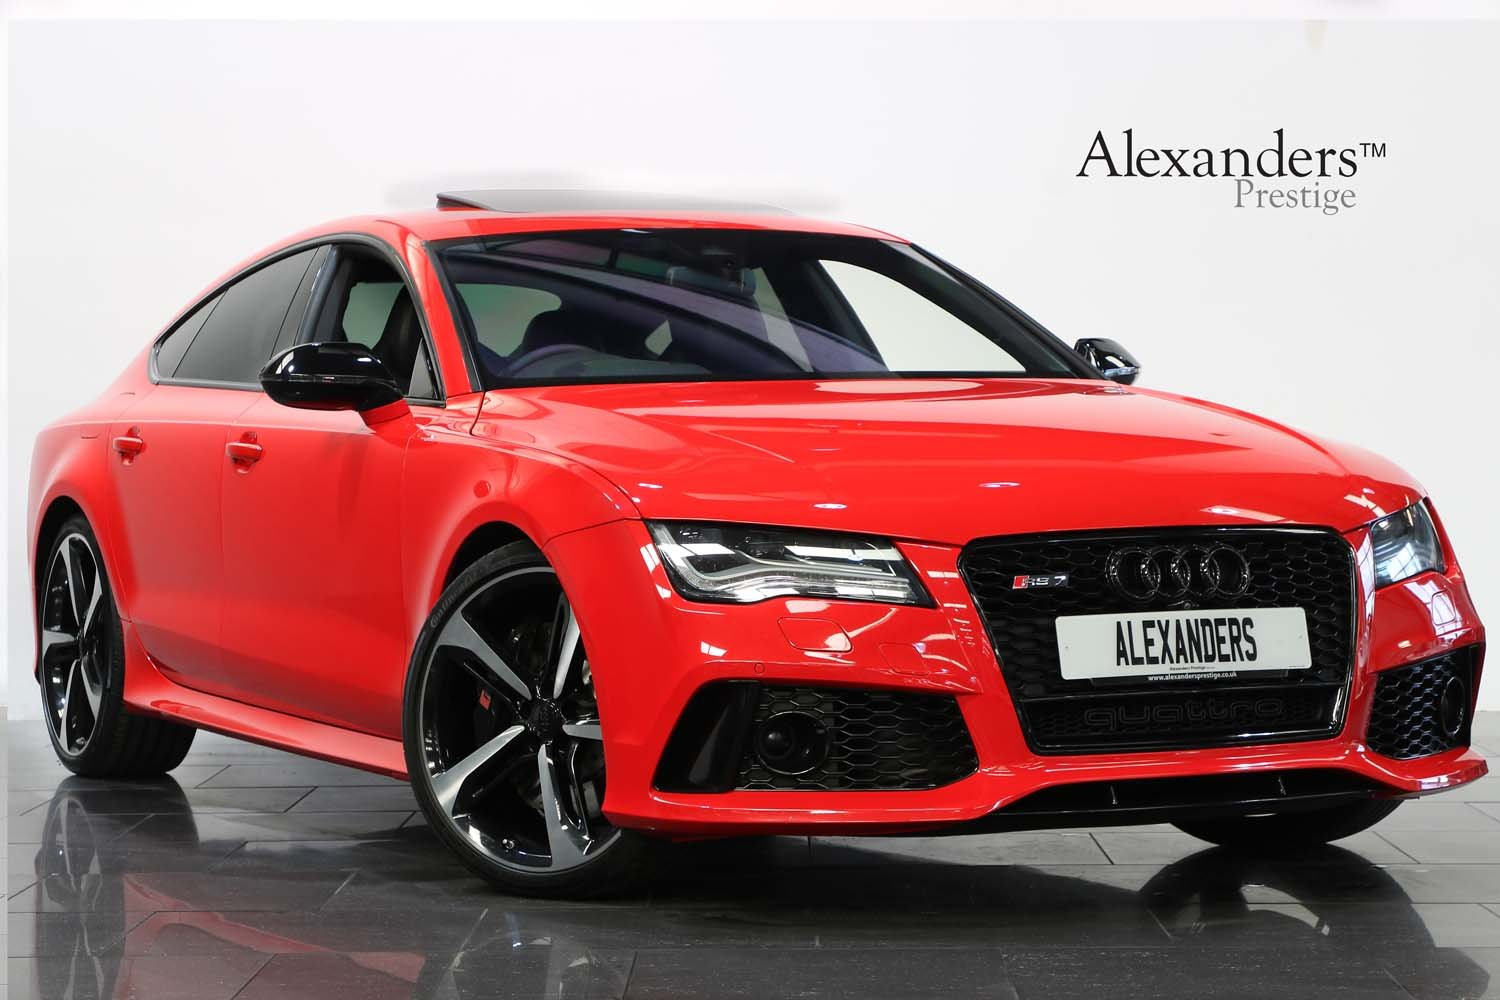 2014 AUDI RS7 SPORTBACK 4.0 TFSI V8 QUATTRO S TRONIC For Sale (picture 1 of 6)